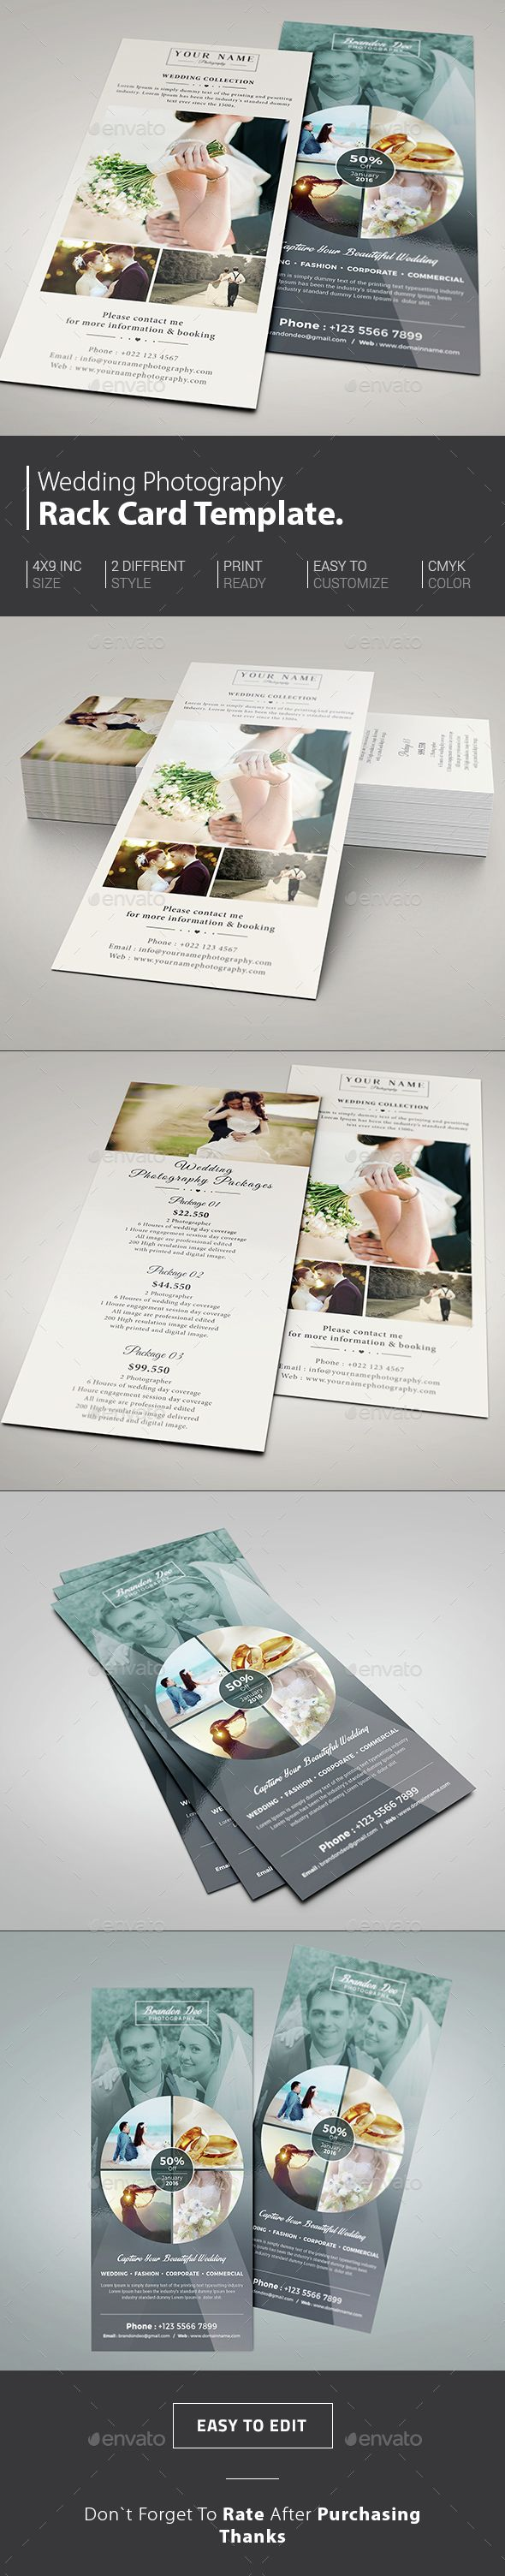 wedding photography rack card template psd download here httpgraphicrivernetitemwedding photography rack card 14836109refksioks - Standard Rack Card Size